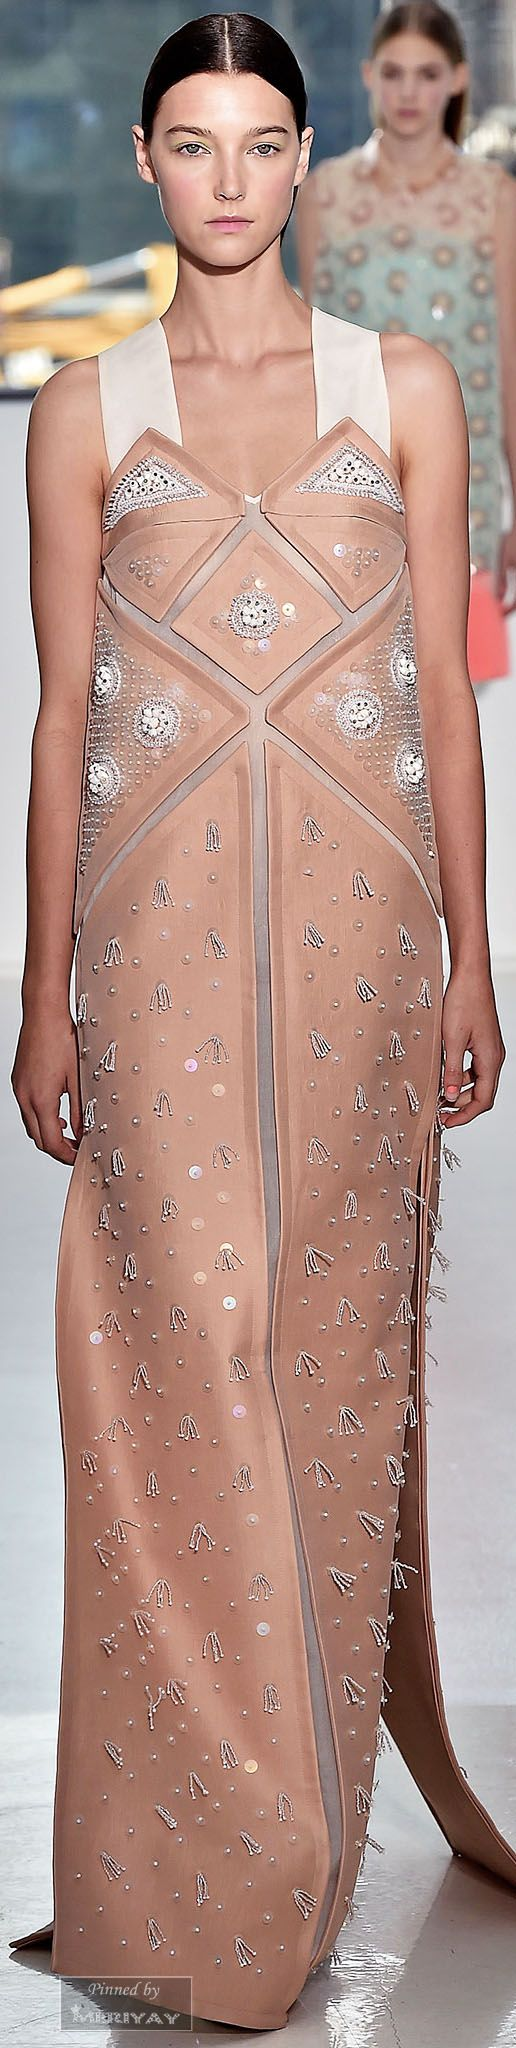 """Delpozo Spring 2015 ♥ """"And the LORD said to Moses, """"Go to the people and consecrate them today and tomorrow. Have them wash their clothes."""" Exodus 19:10"""